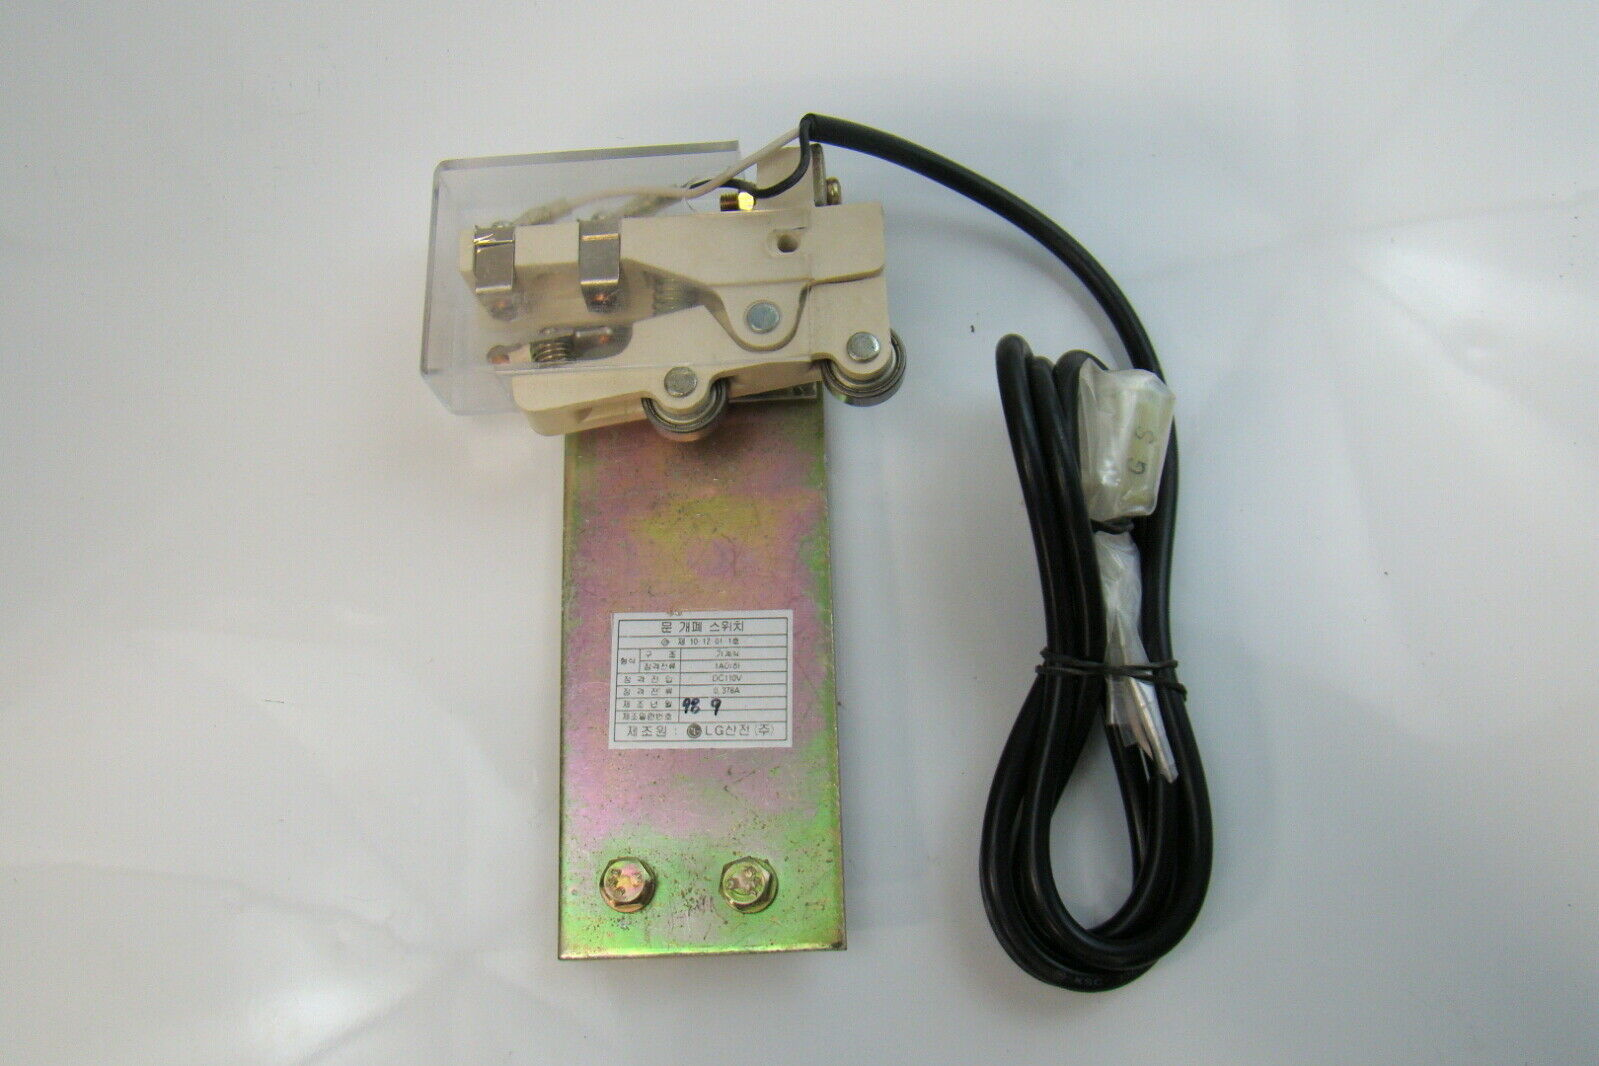 Details about LG Elevator 110 Volt DC Limit Switch on Mounting Plate #614C3D